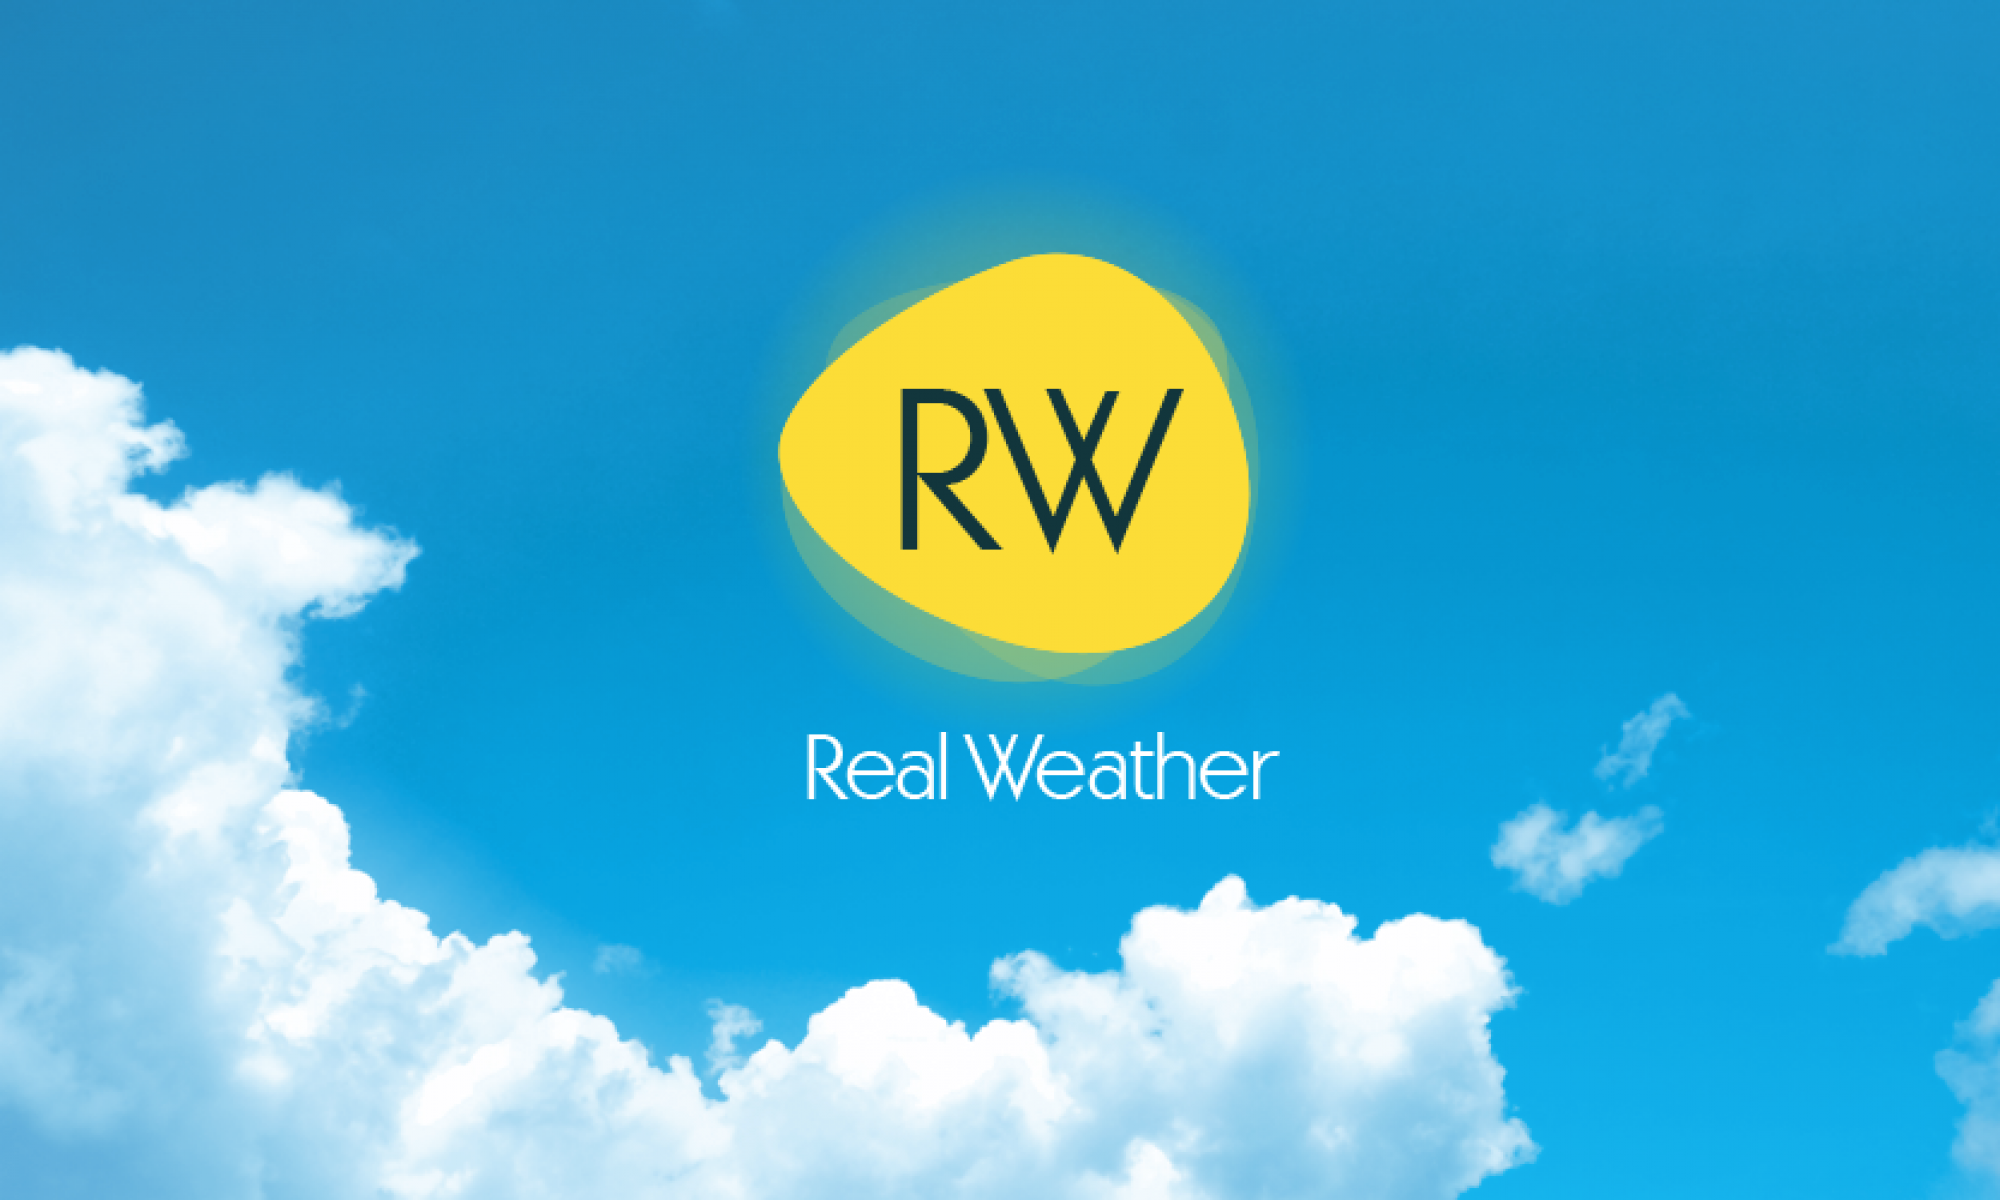 Real Weather